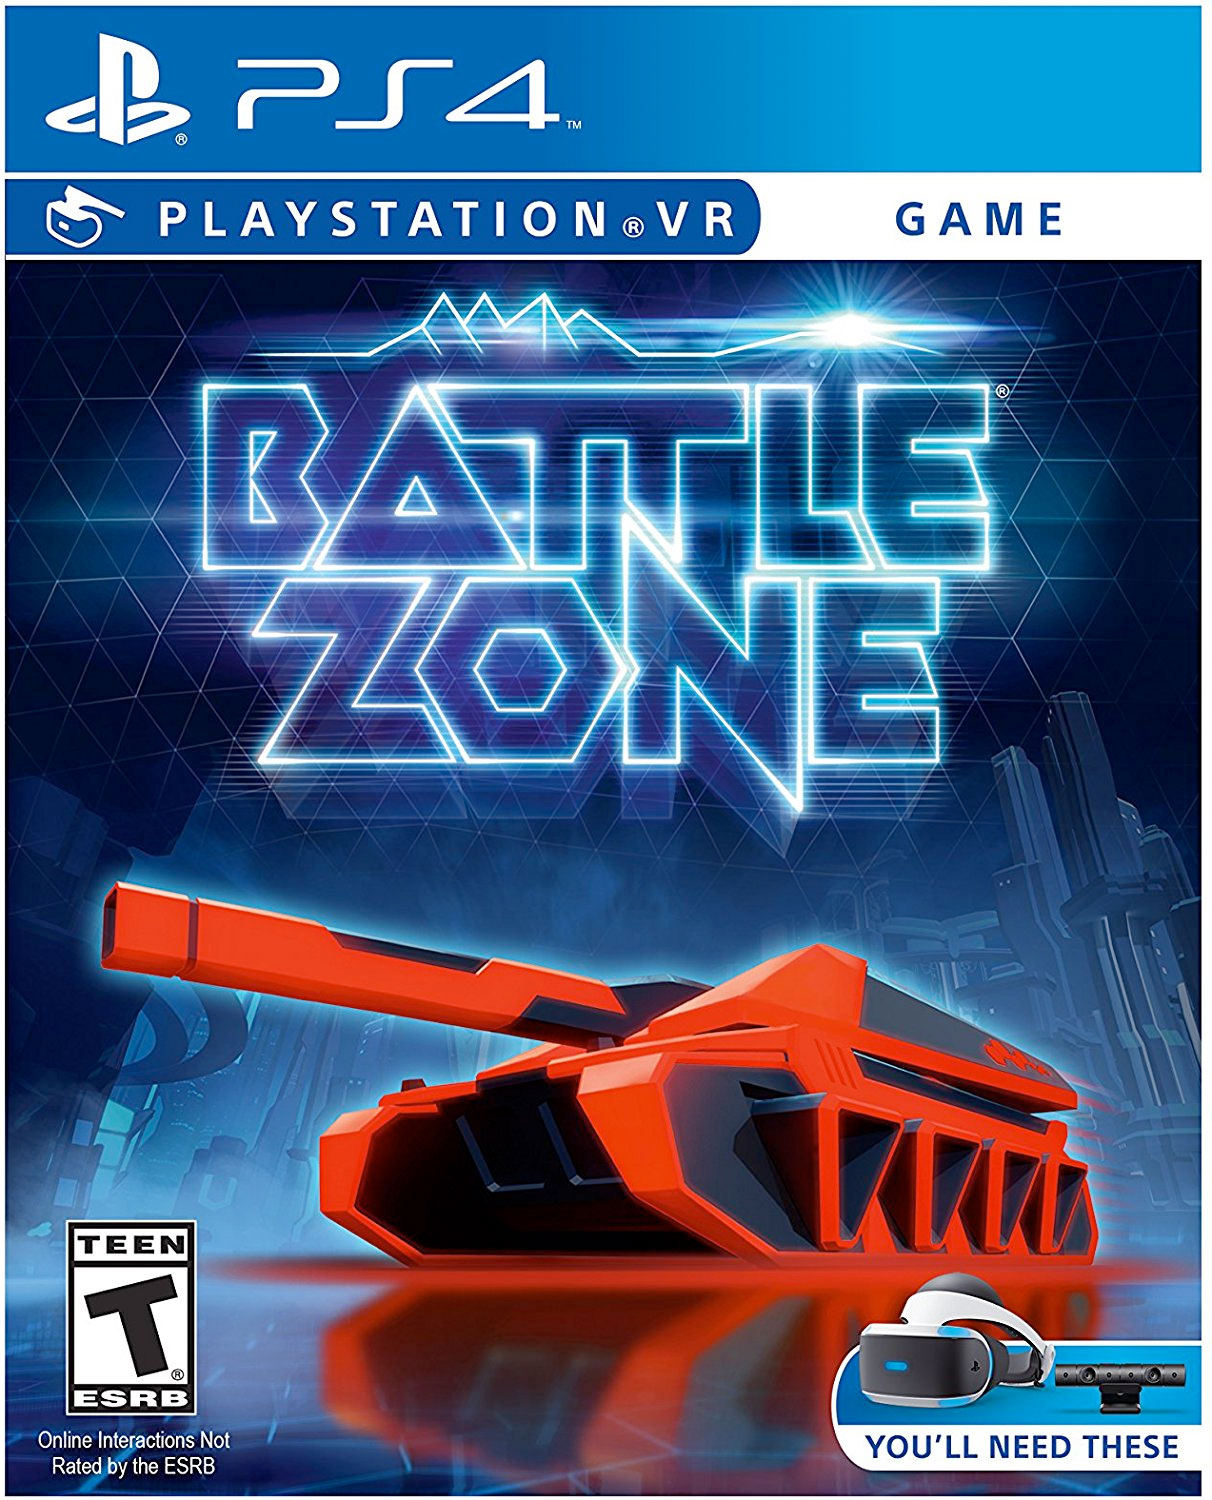 Battleaone VR for PS4 Pro